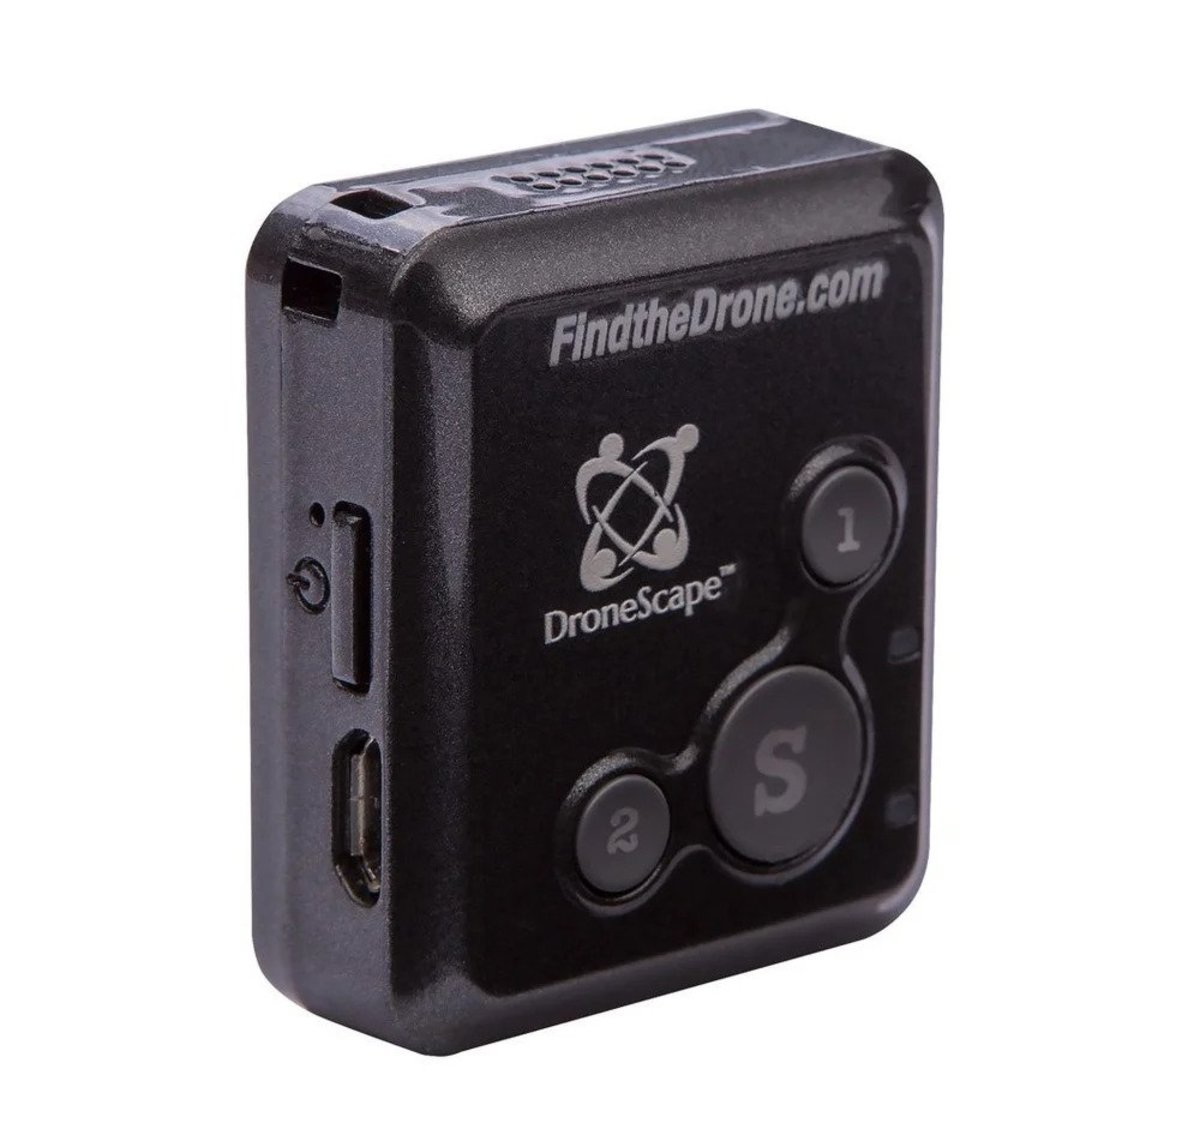 Technology GPS/GSM , 85g Weight, Range unlimited